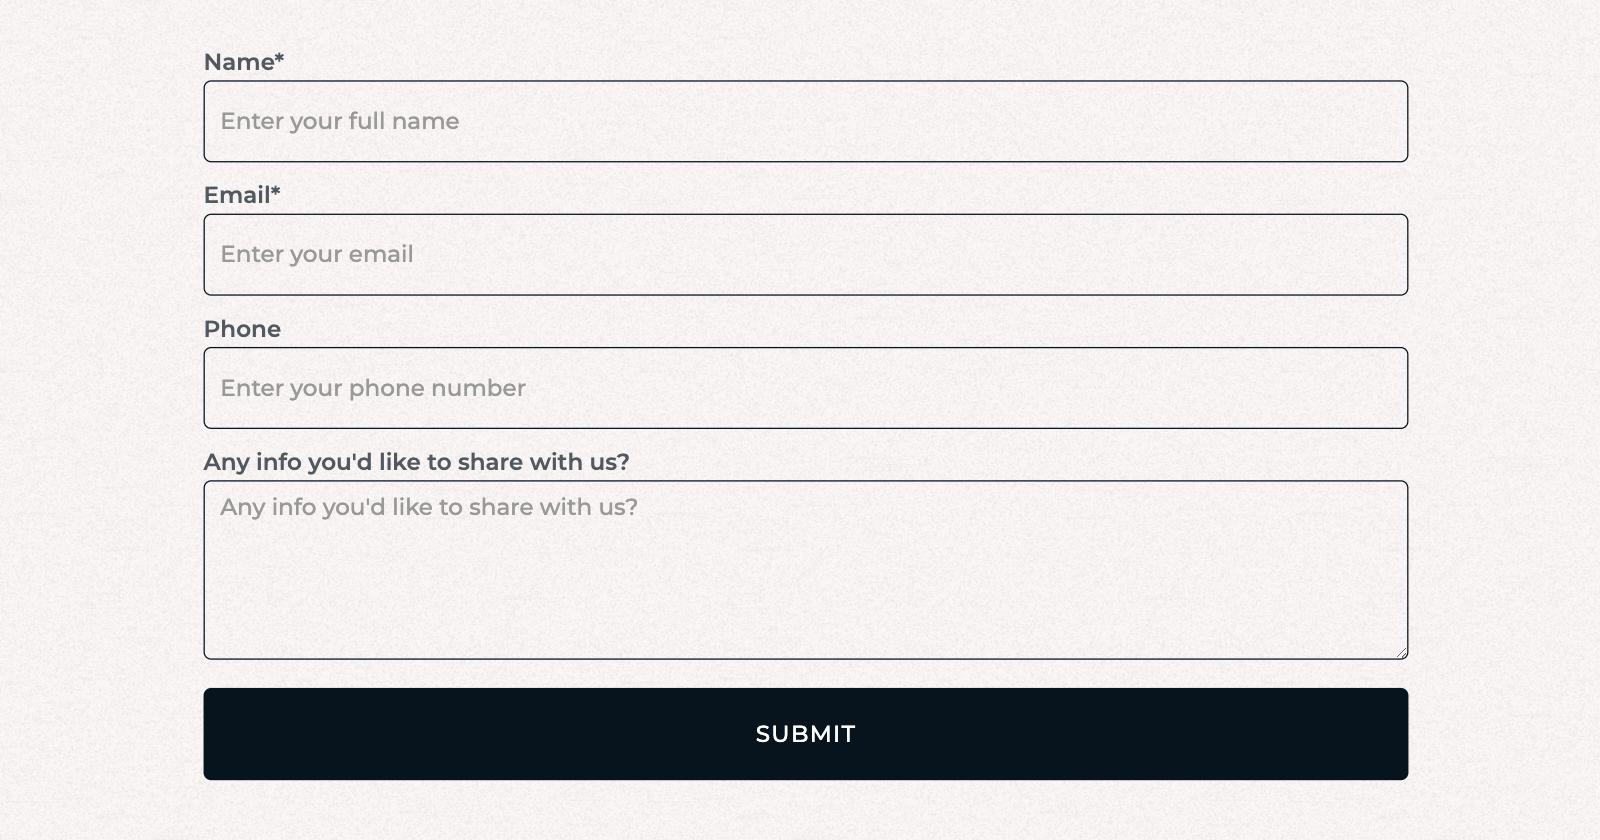 a form showing field labels and placeholders